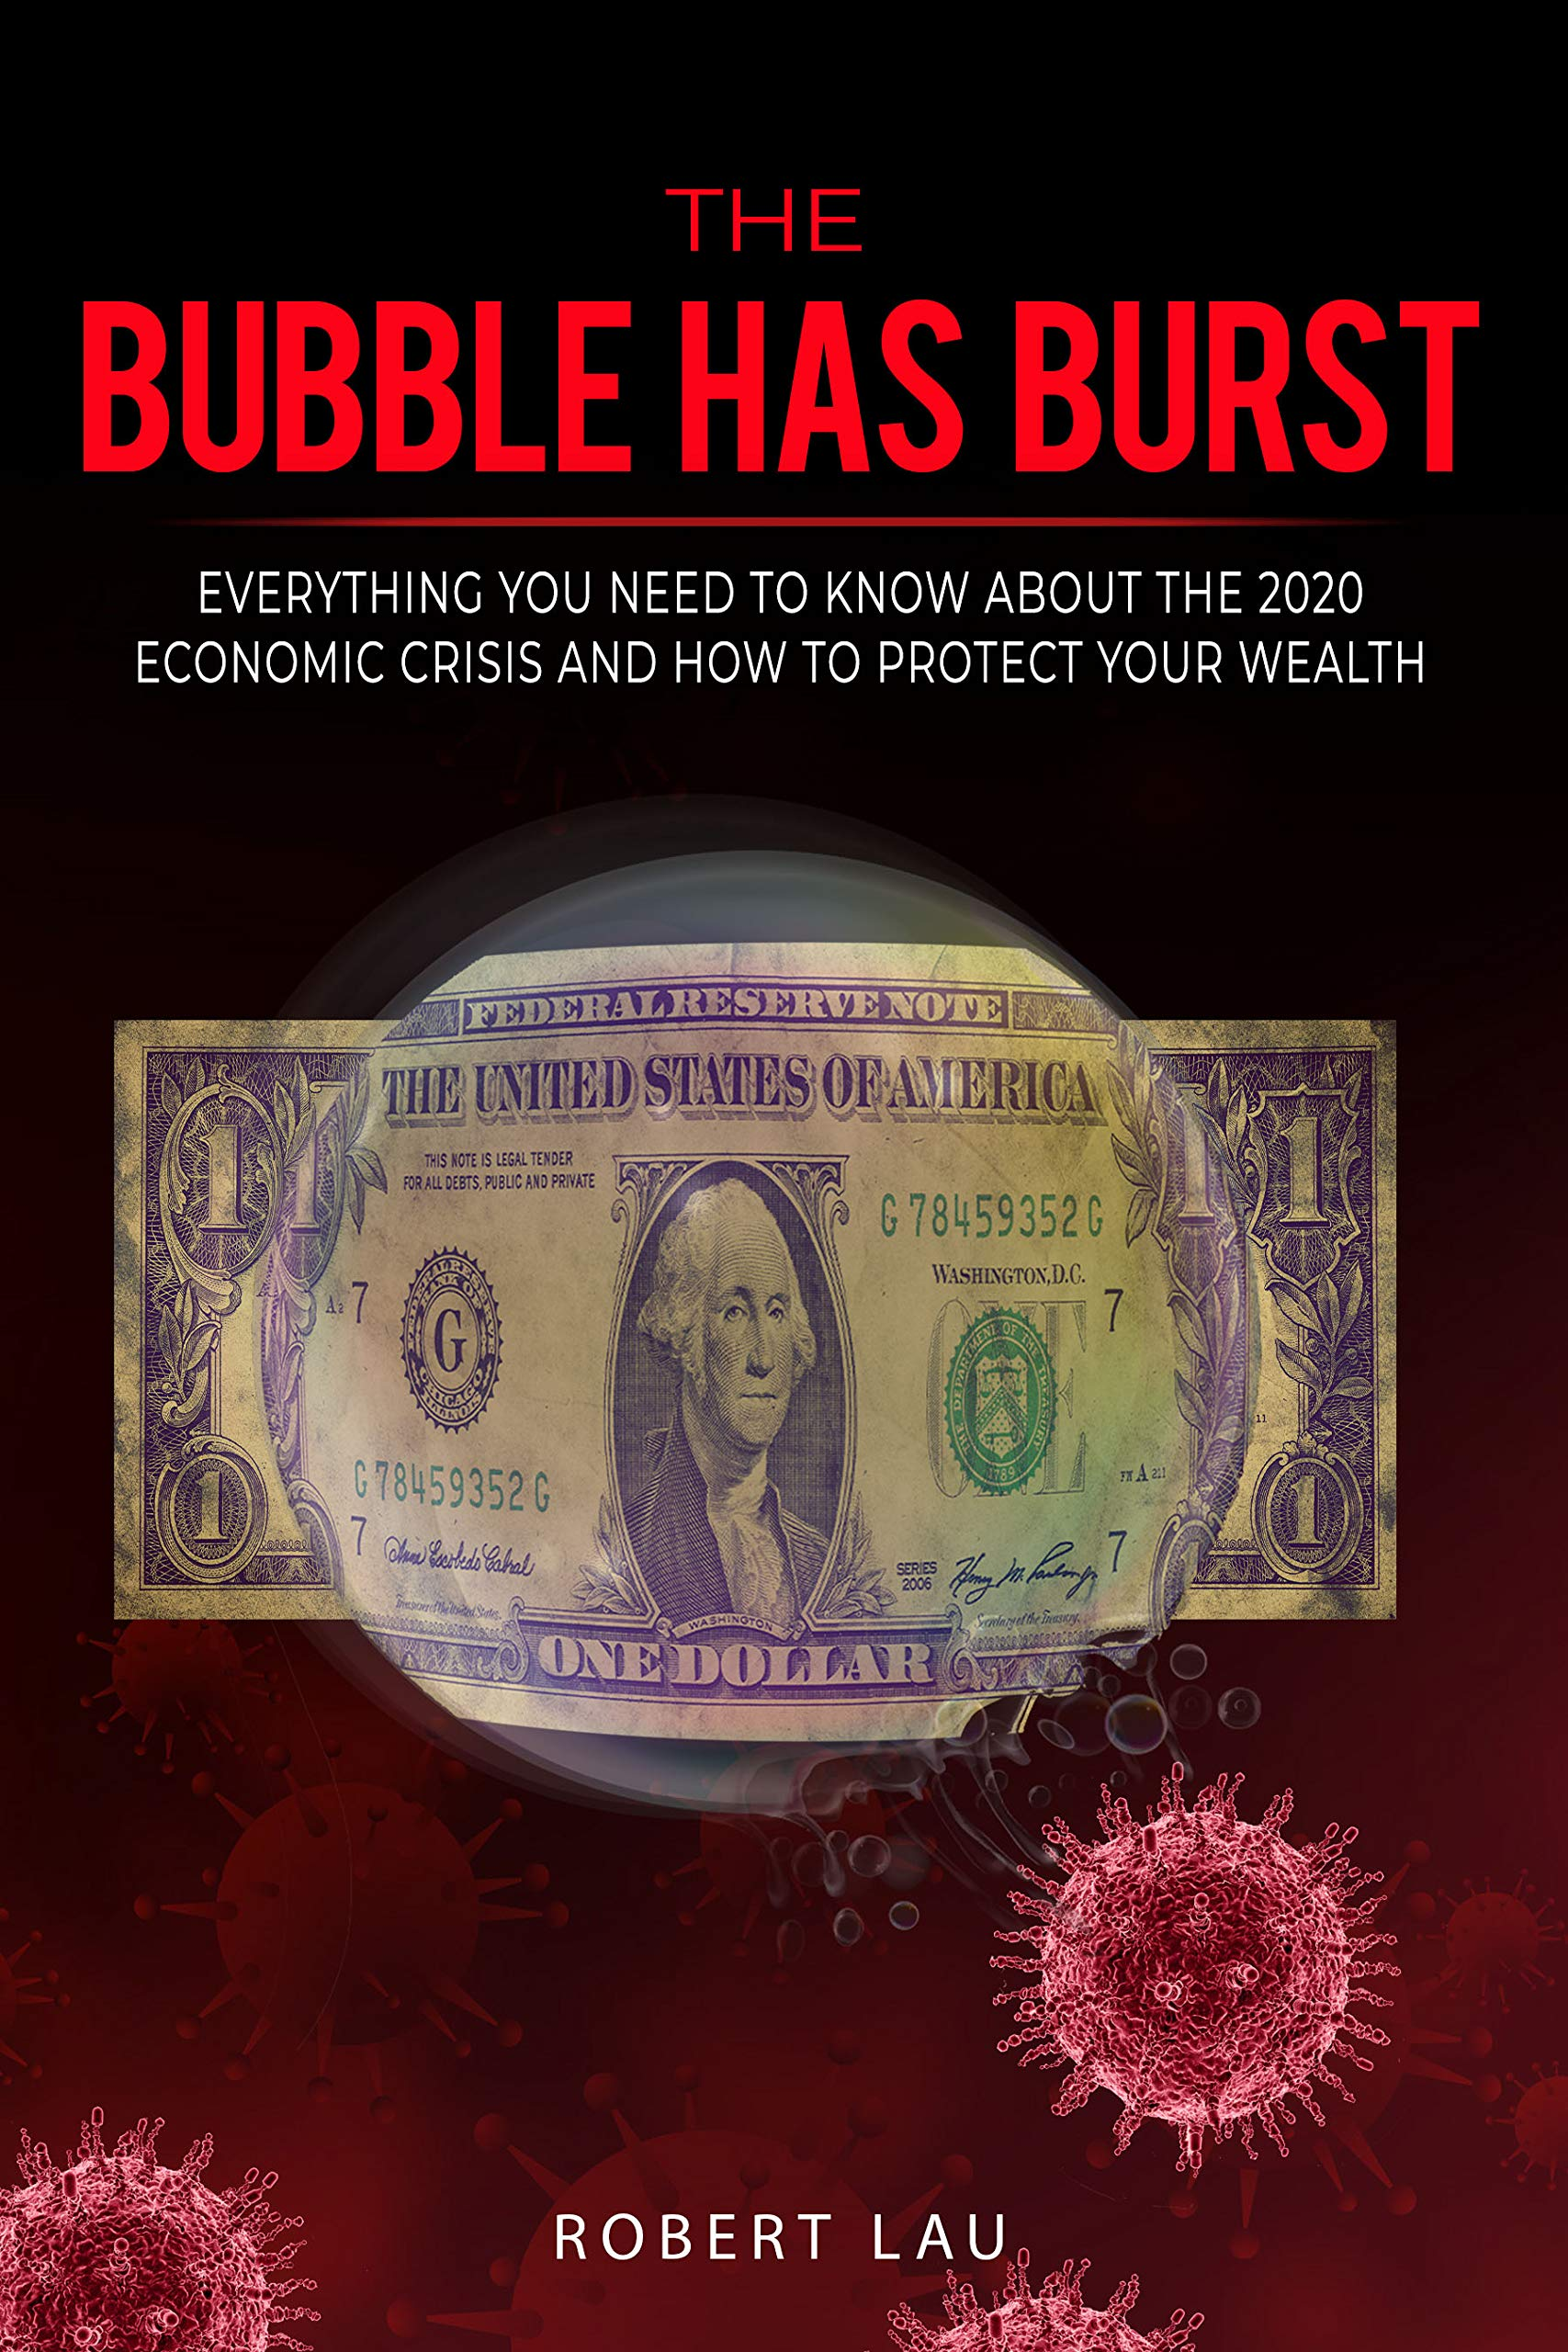 The Bubble Has Burst: Everything You Need to Know About the 2020 Economic Crisis and How to Protect Your Wealth